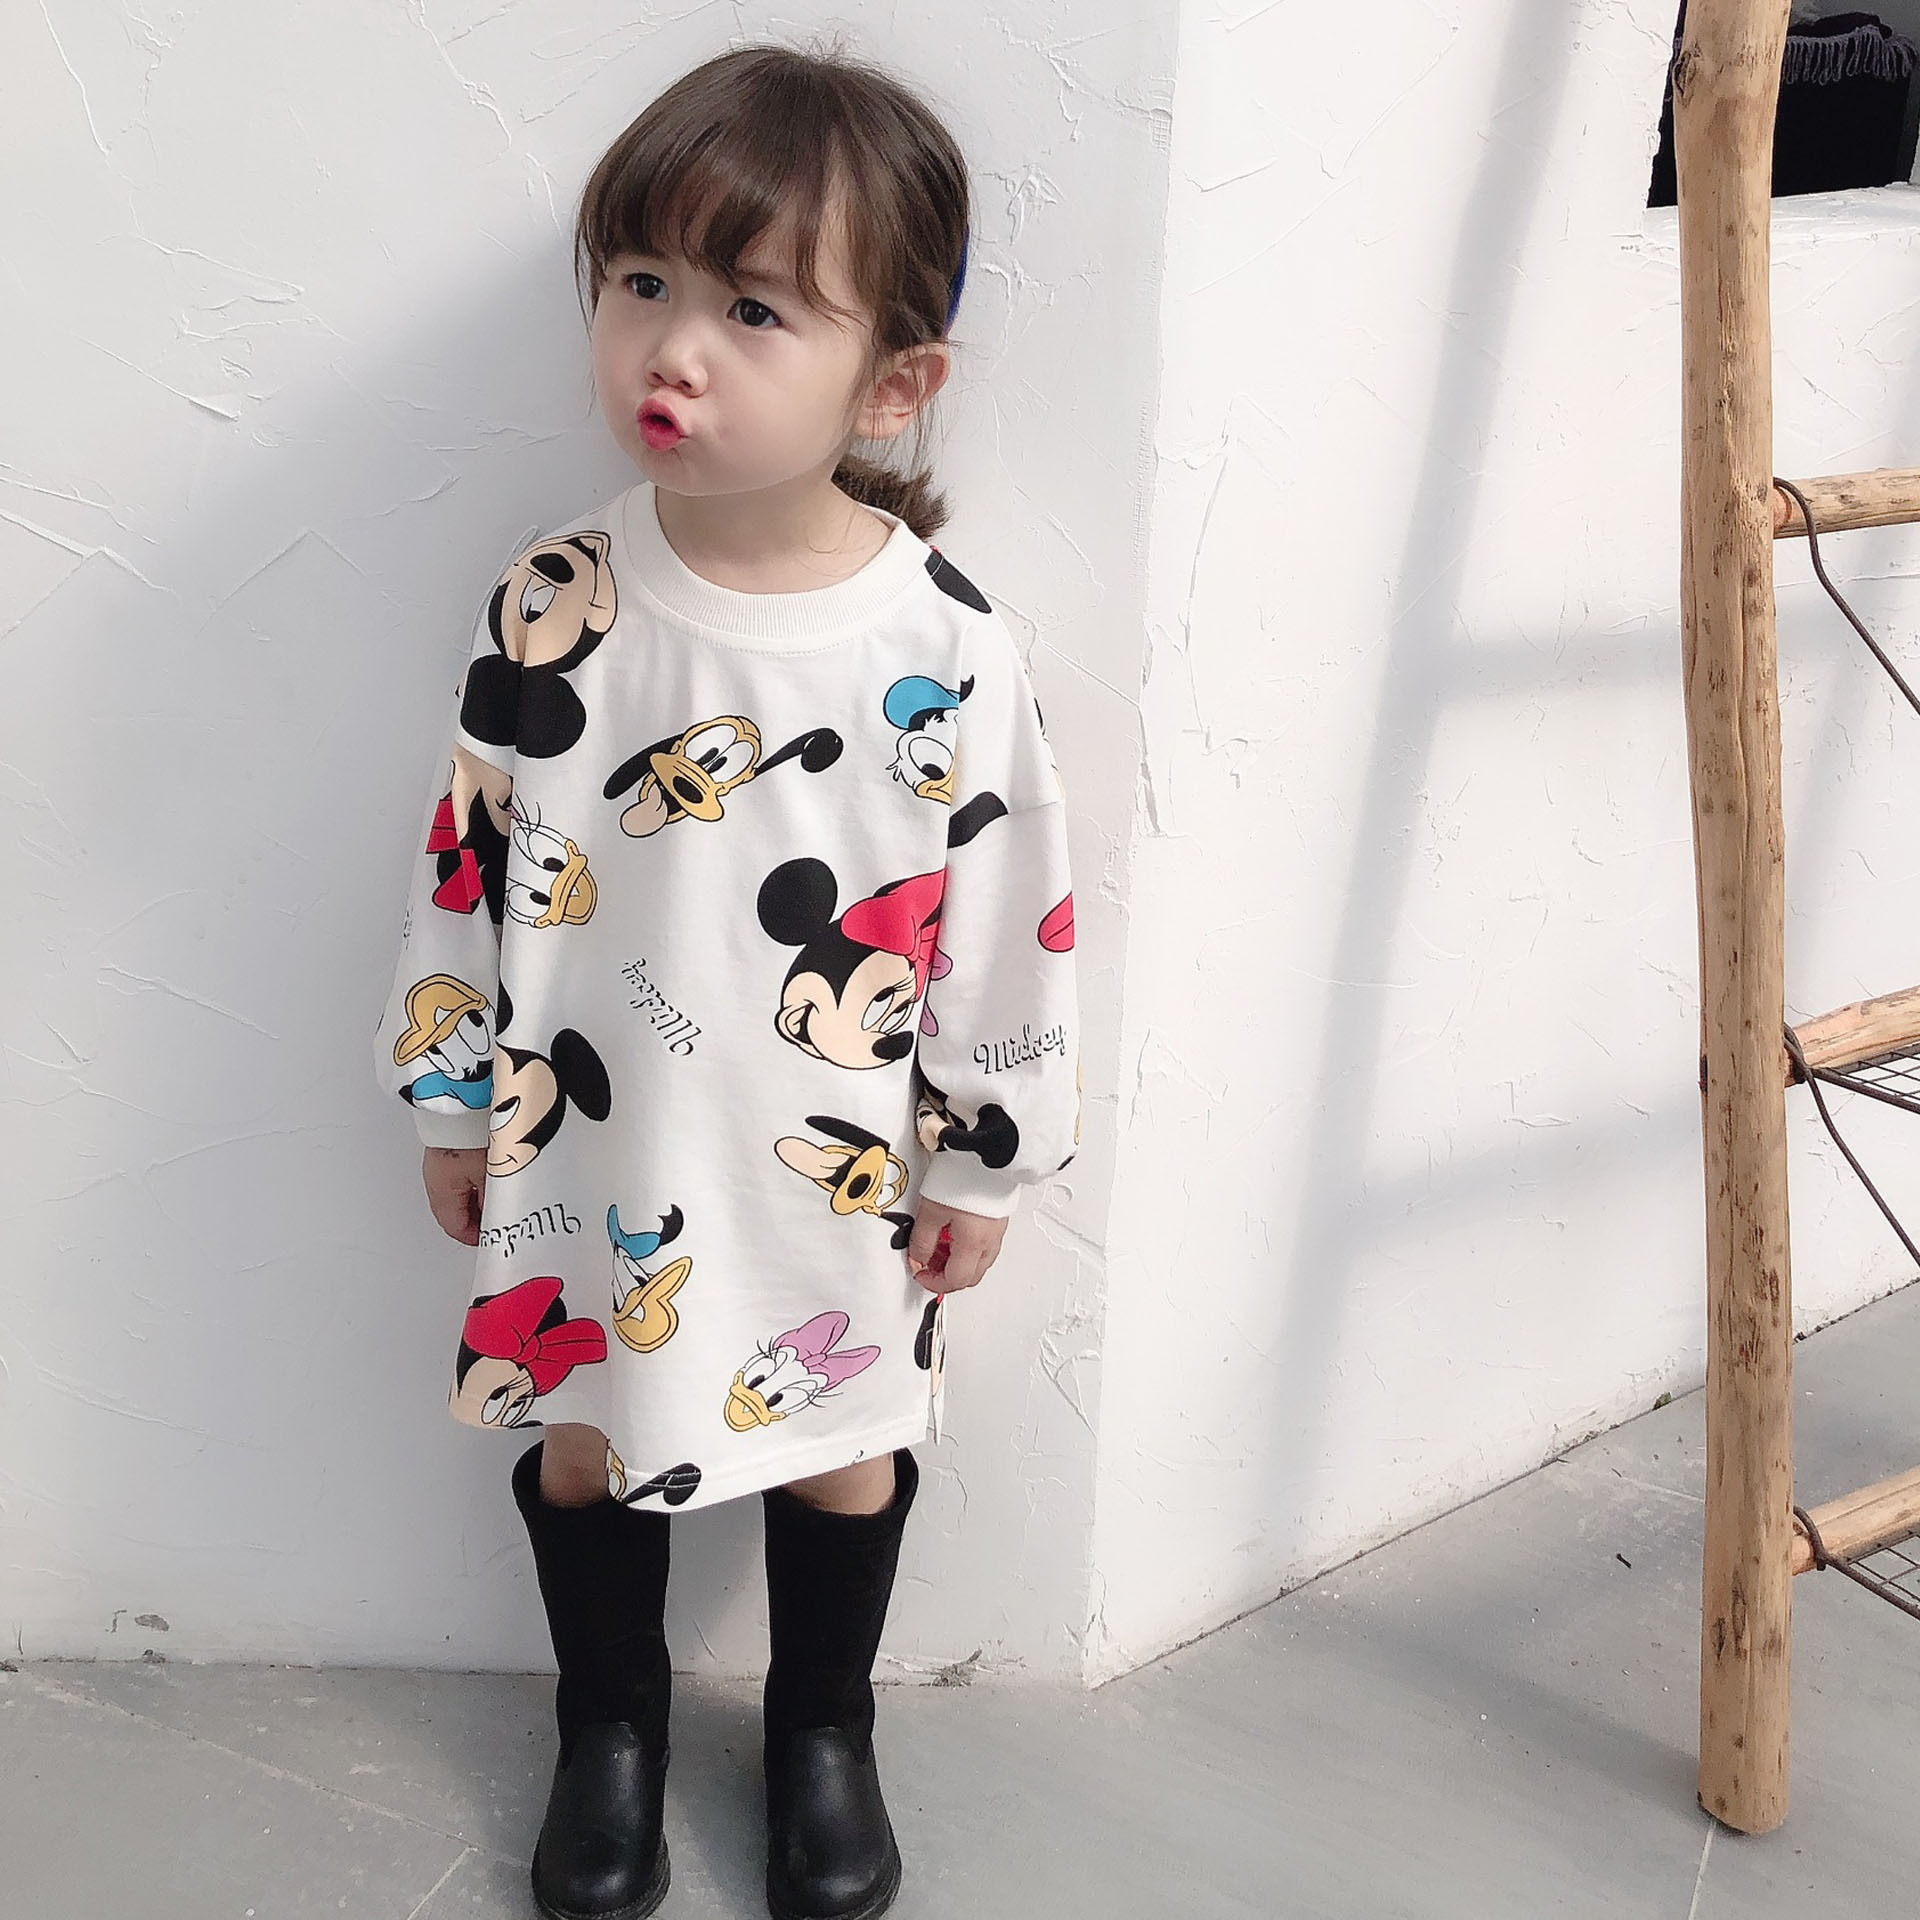 2020 Spring Cartoon Mickey Minnie Kids Dresses For Girls Autumn Children Clothing For Birthday Party 2-7 Years Casual Kids Dress